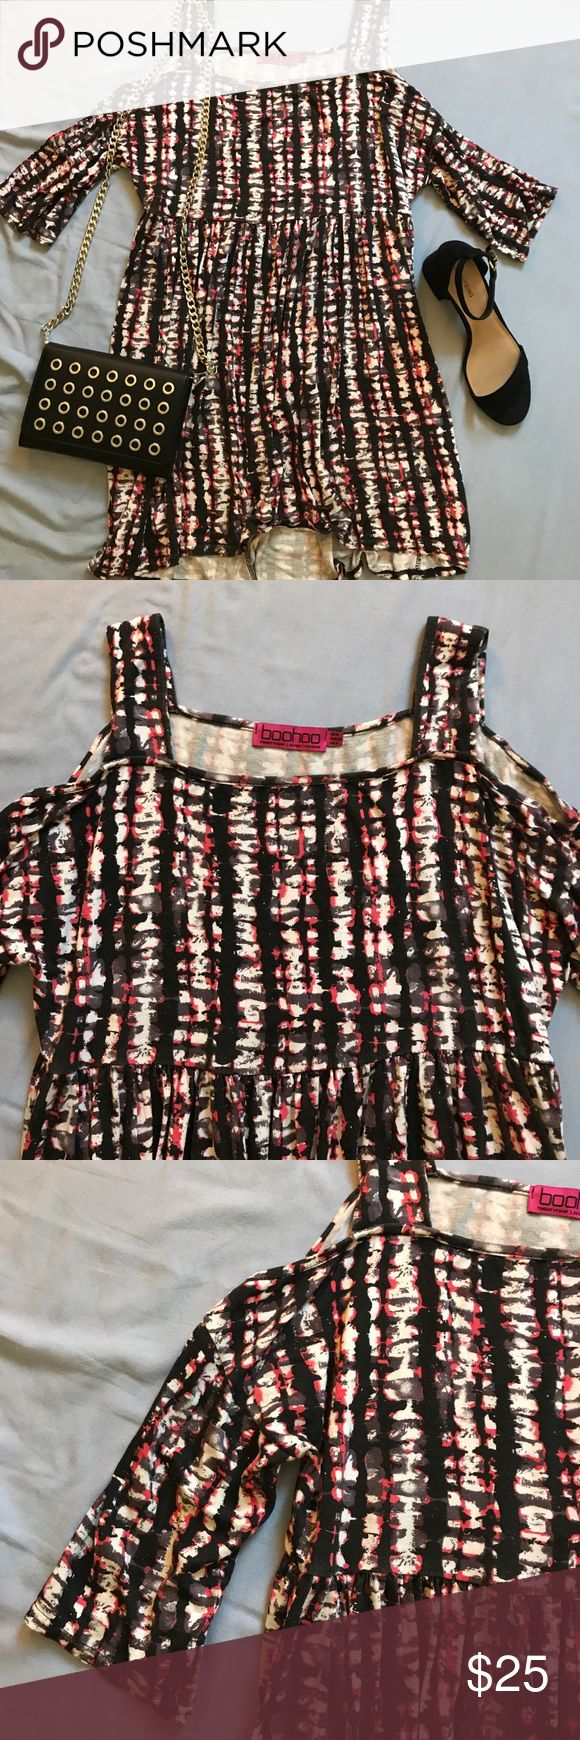 "Trendy cold shoulder dress This dress is so cute! It has thick straps with a cold shoulder details and flowy mid length sleeves. It is ""high-low"" so a little shorter in front, but not by much. It has an empire waist and falls beautifully to conceal any concern areas. The fabric is heavy enough that it is appropriate for going out in the evening or to wear to work during the day! It has a fun, hot pink, black, white, and grey design. Very versatile. Great condition. Will fit sizes 00-2…"